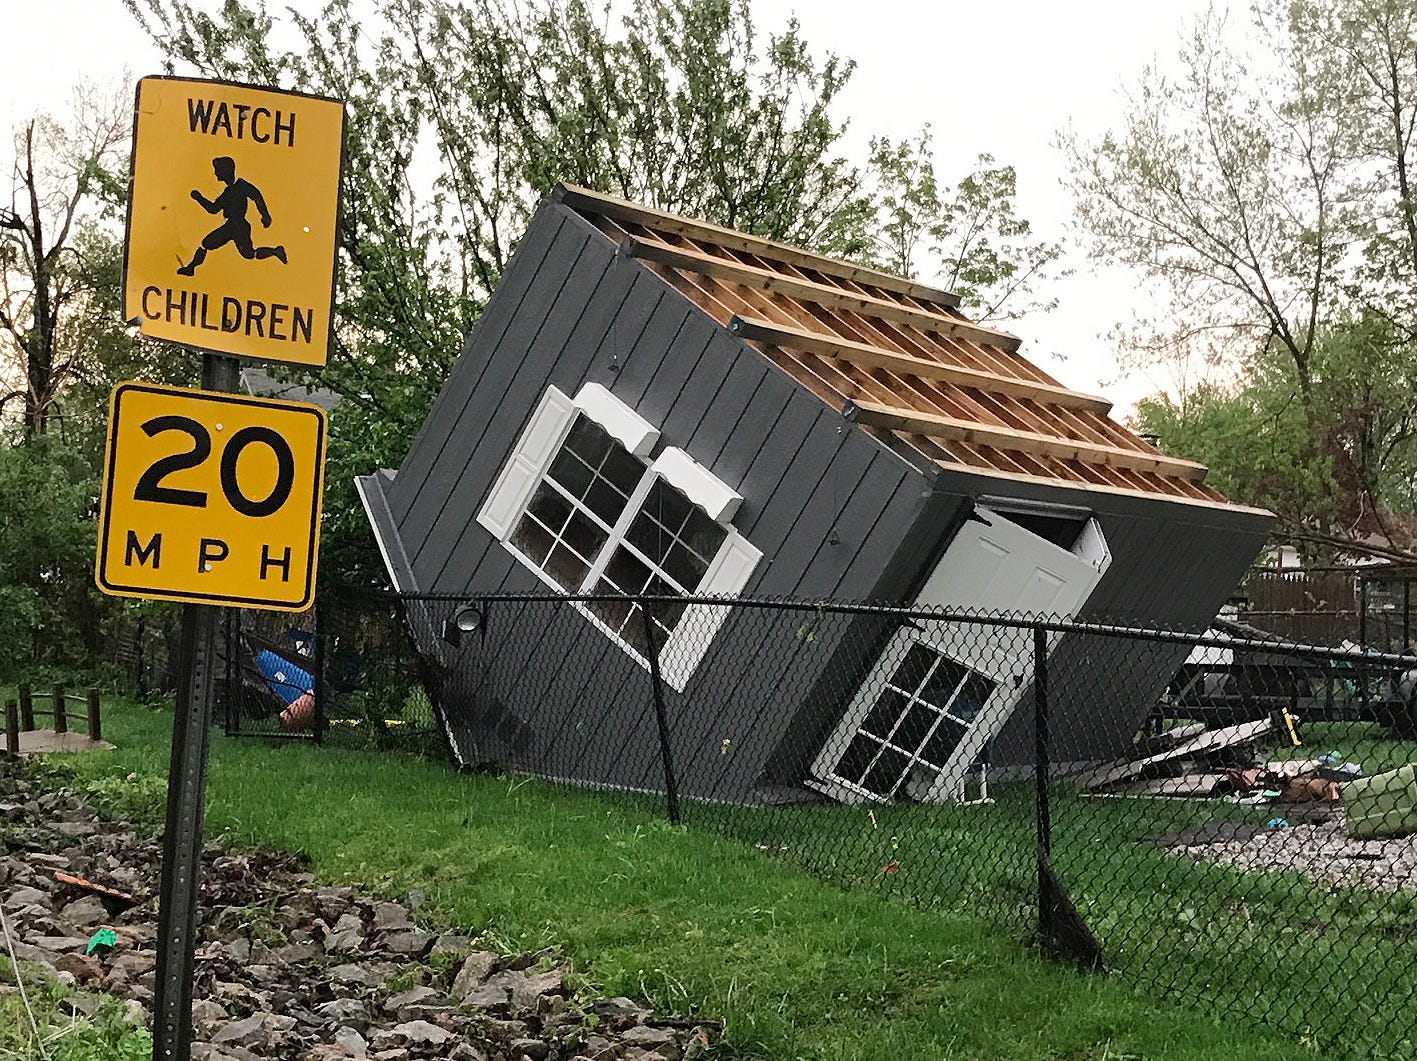 The morning after an EF-2 tornado hit Lake Carmel, a child's playhouse was seen blown over on Lake Shore Drive May 15, 2018.